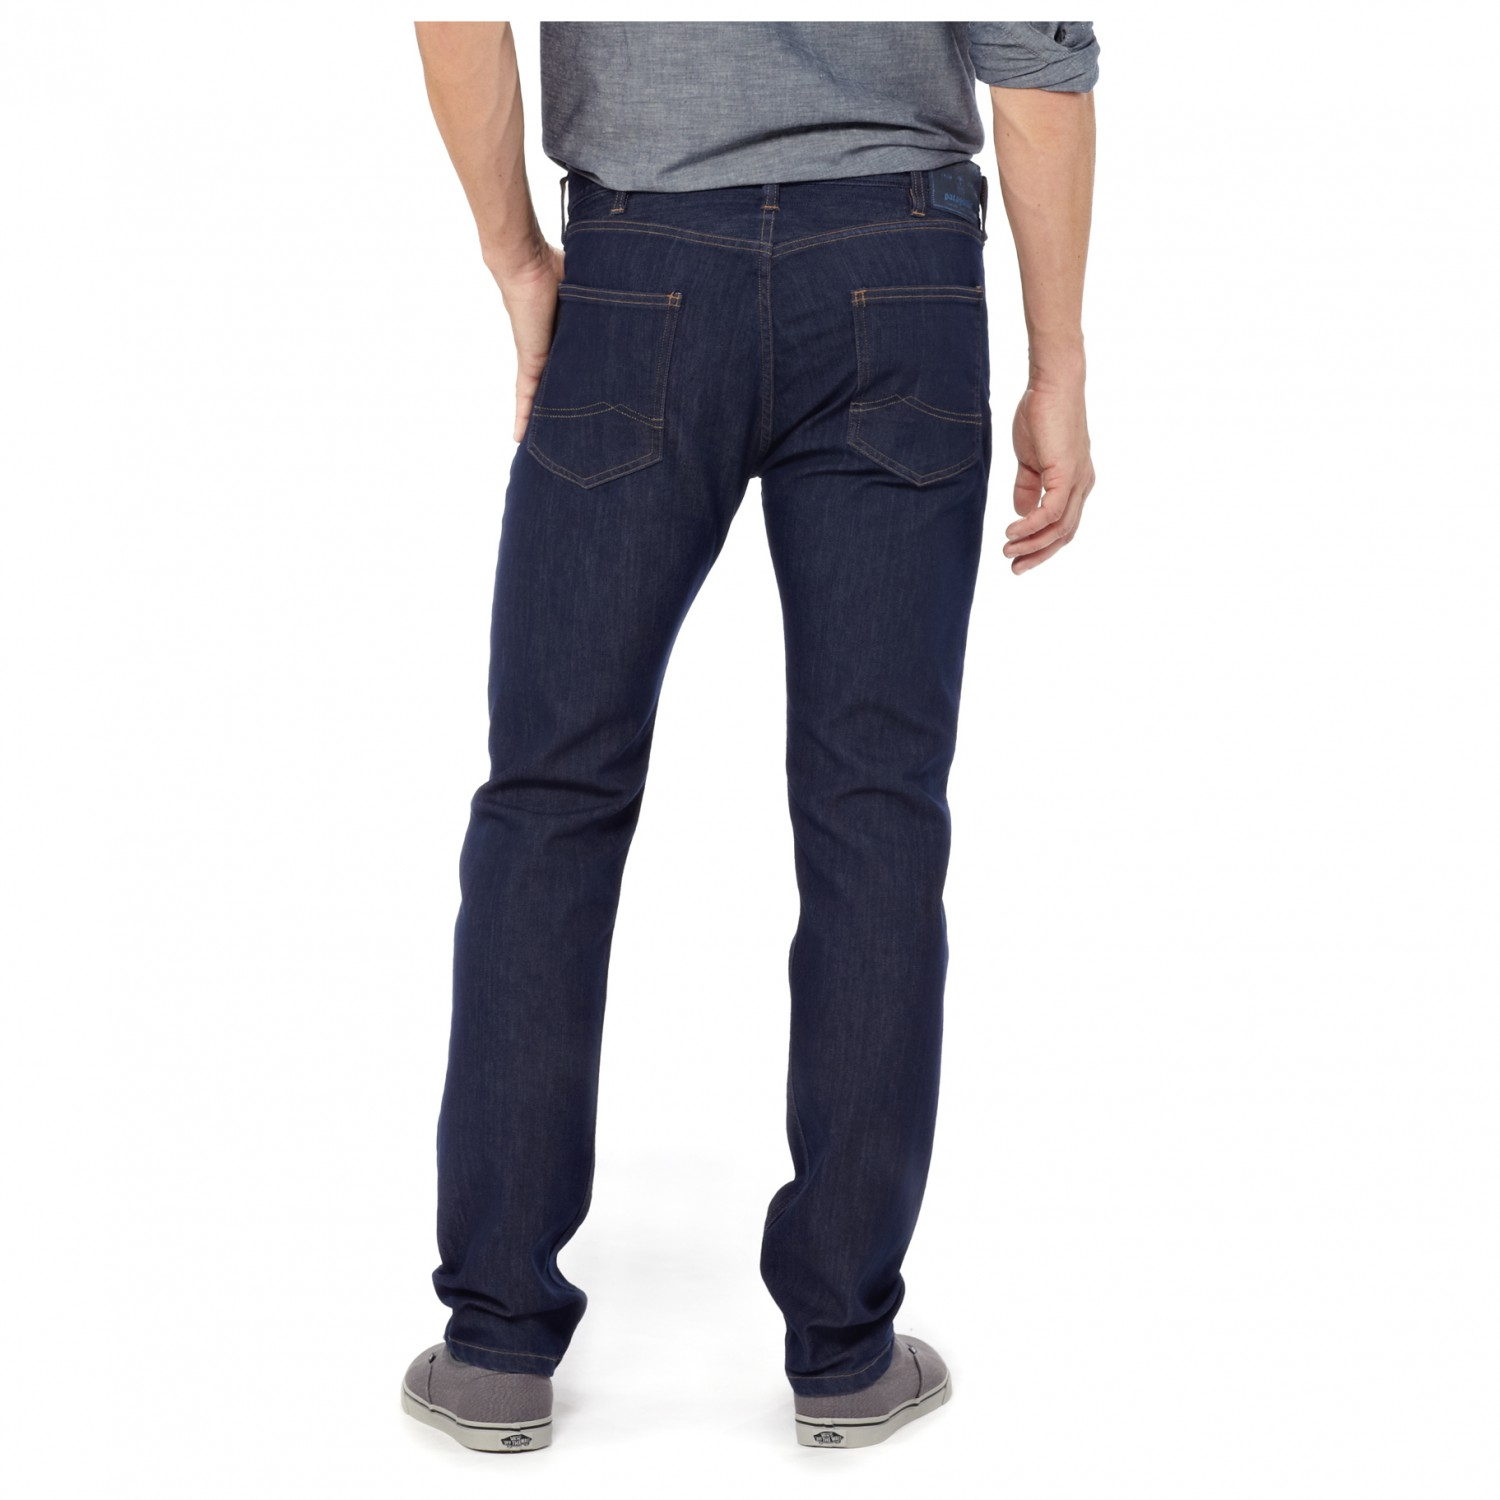 a2975588 Patagonia Performance Straight Fit Jeans - Jeans Men's | Free EU ...